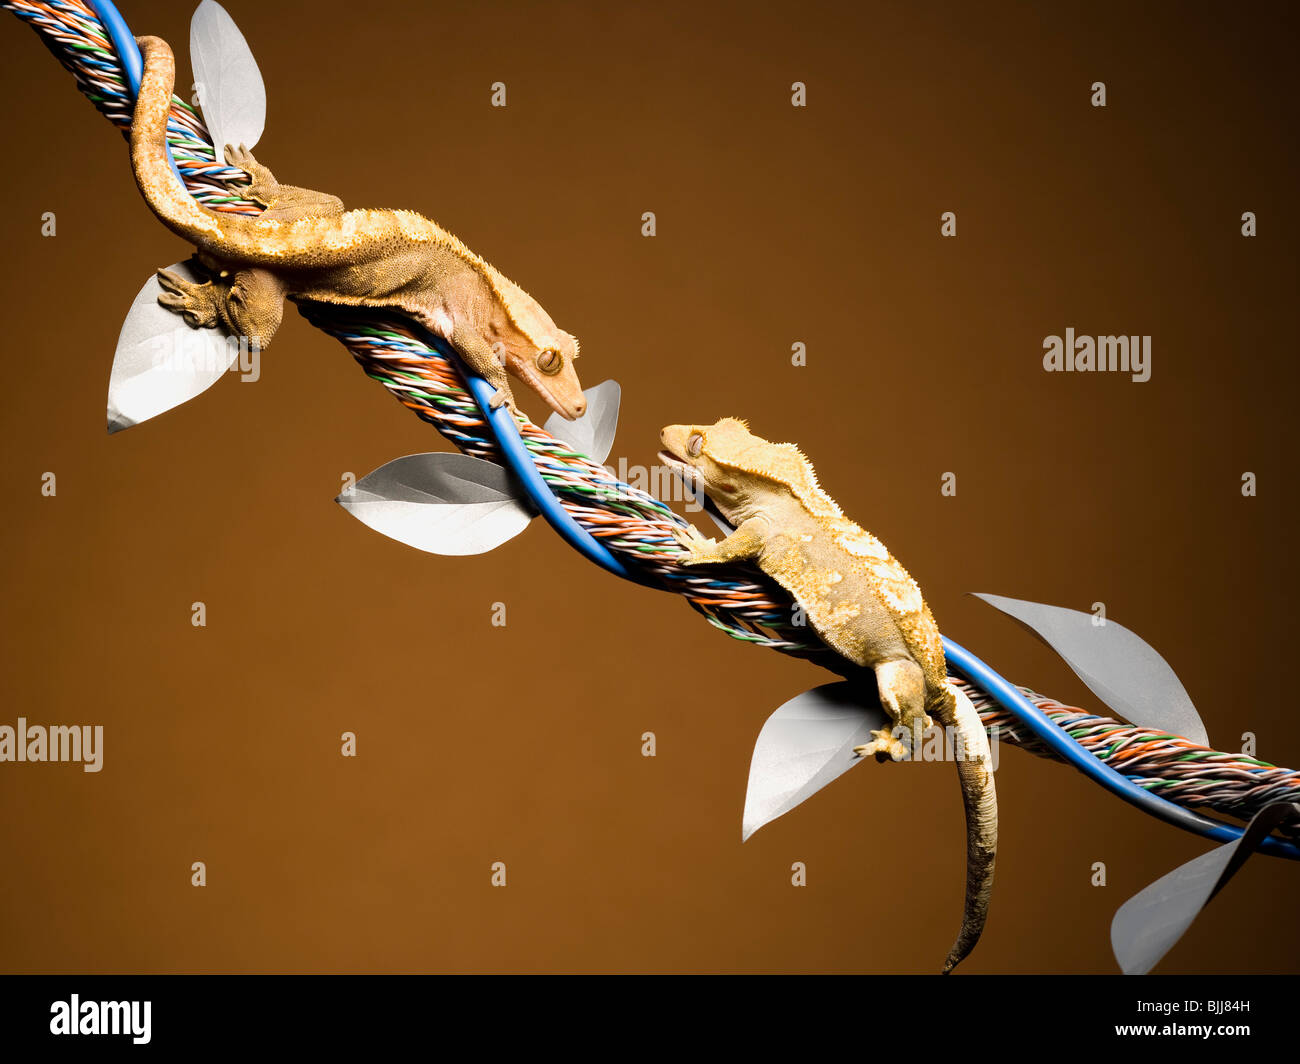 Two lizards on cable with leaves Stock Photo